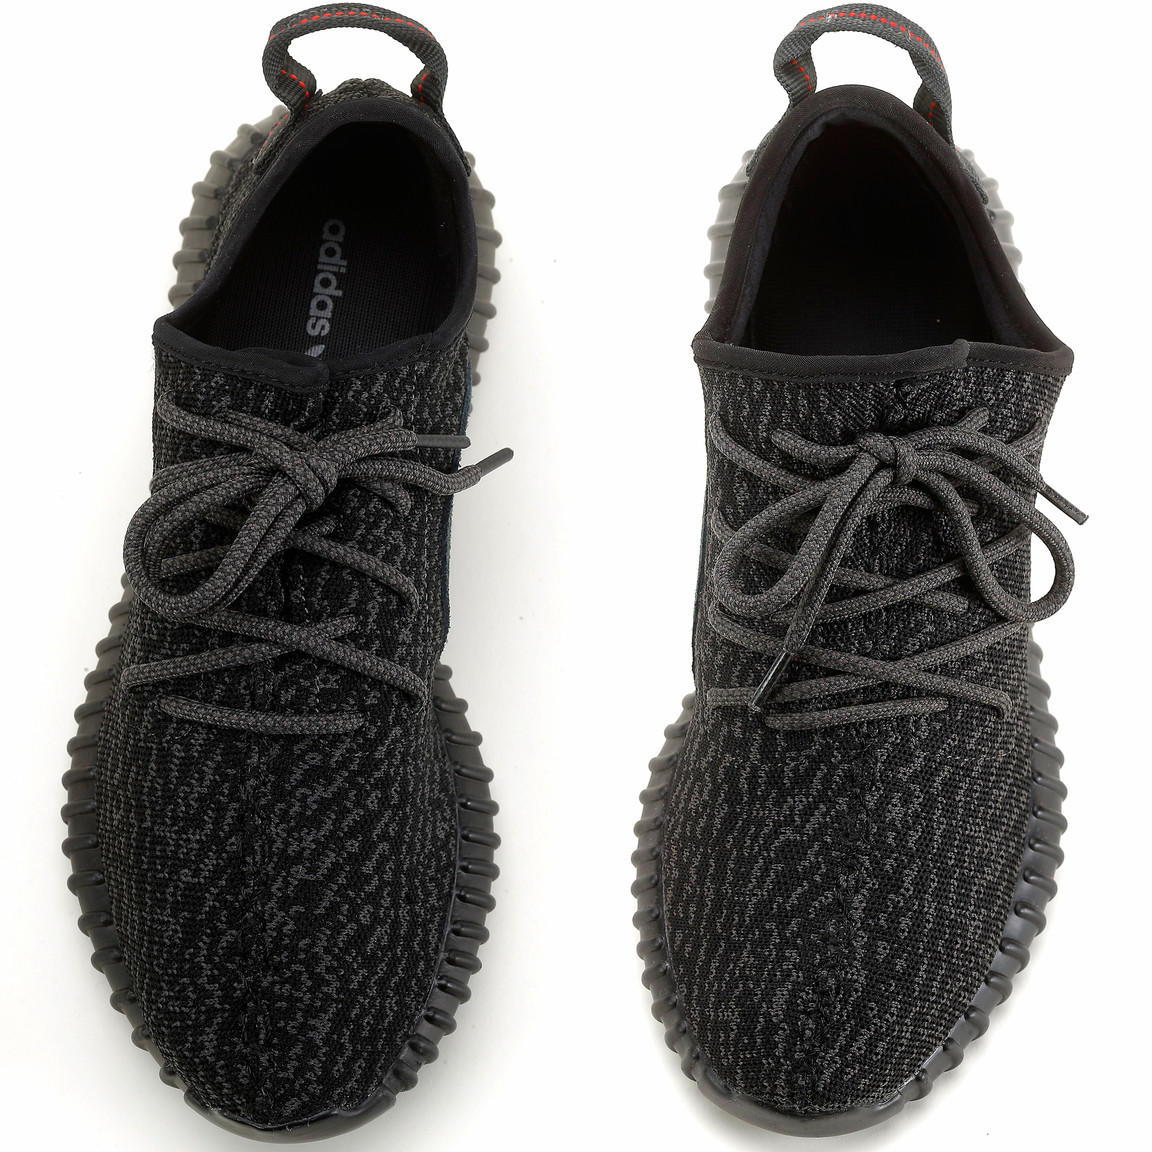 c0f2312f6 Counterfeit Yeezys and the booming sneaker black market - Los ...